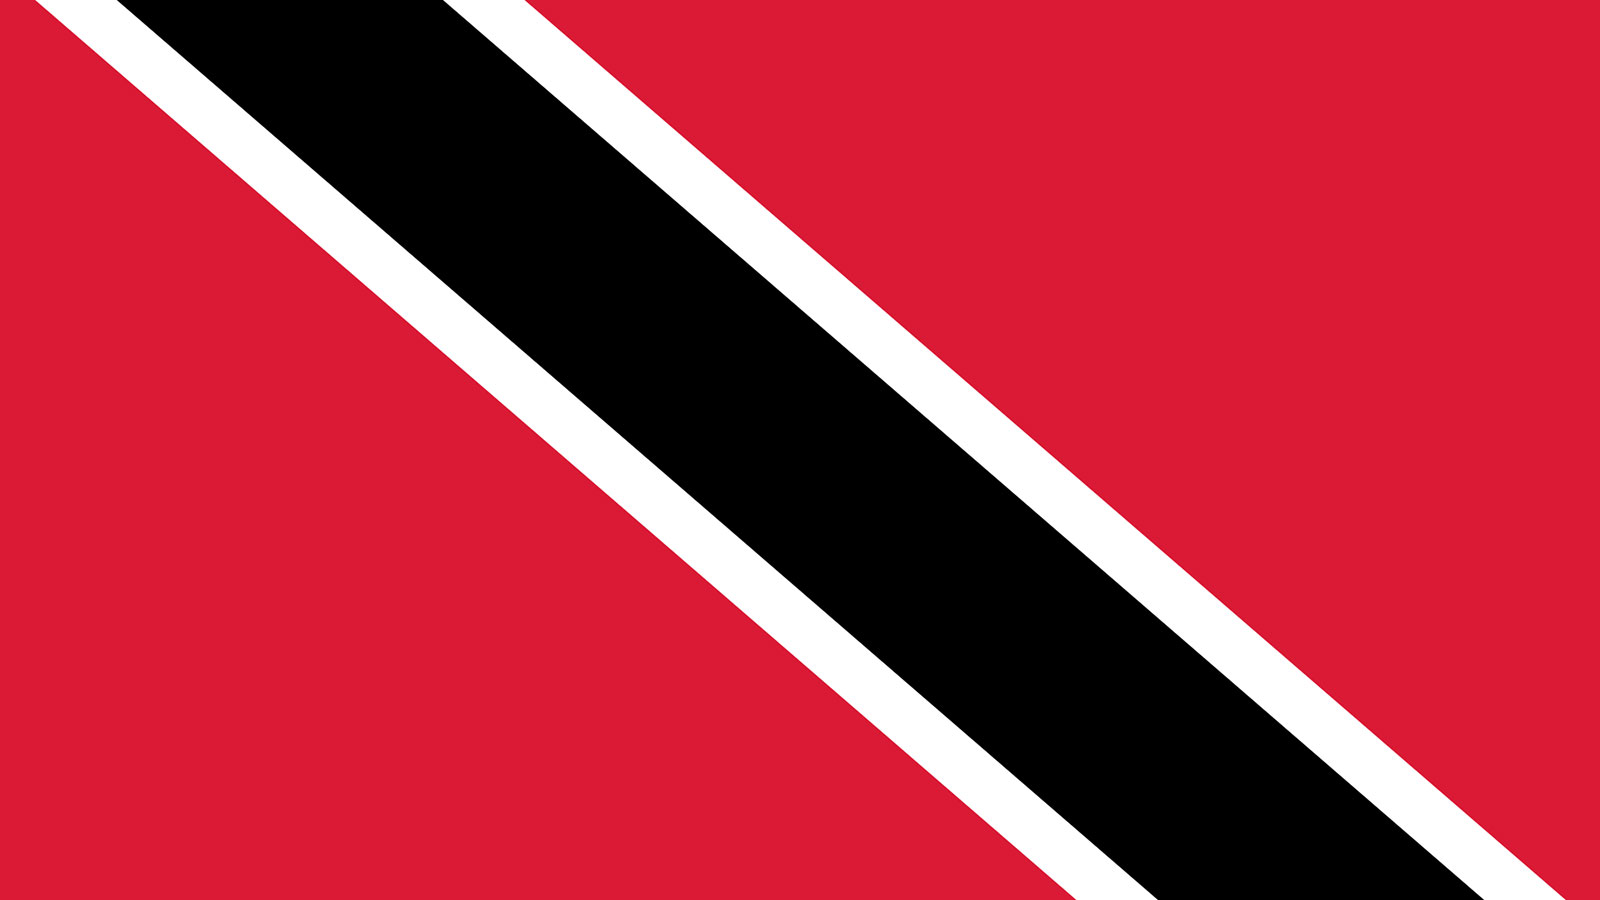 Trinidad and Tobago High Court Overturns Law Criminalizing Same-Sex Relations